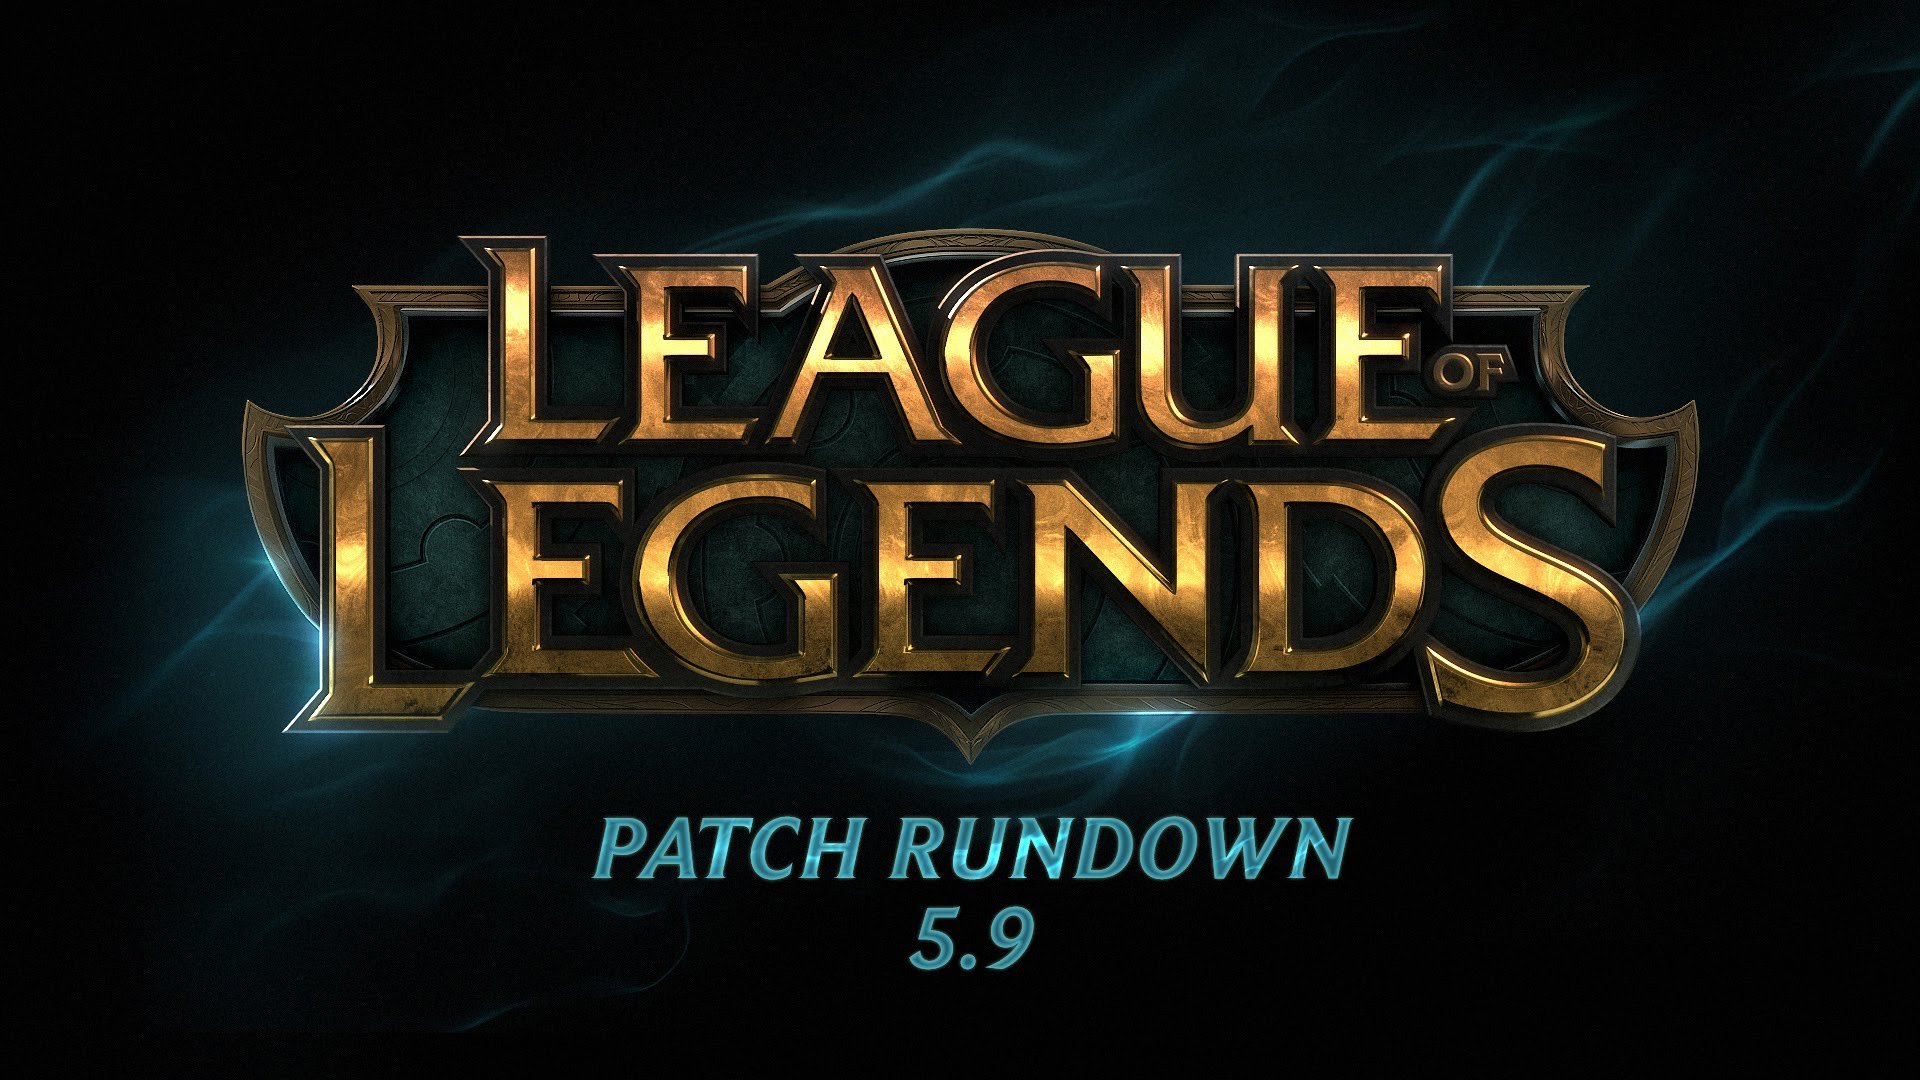 League of Legends Patch Rundown 5.9 Video Thumbnail